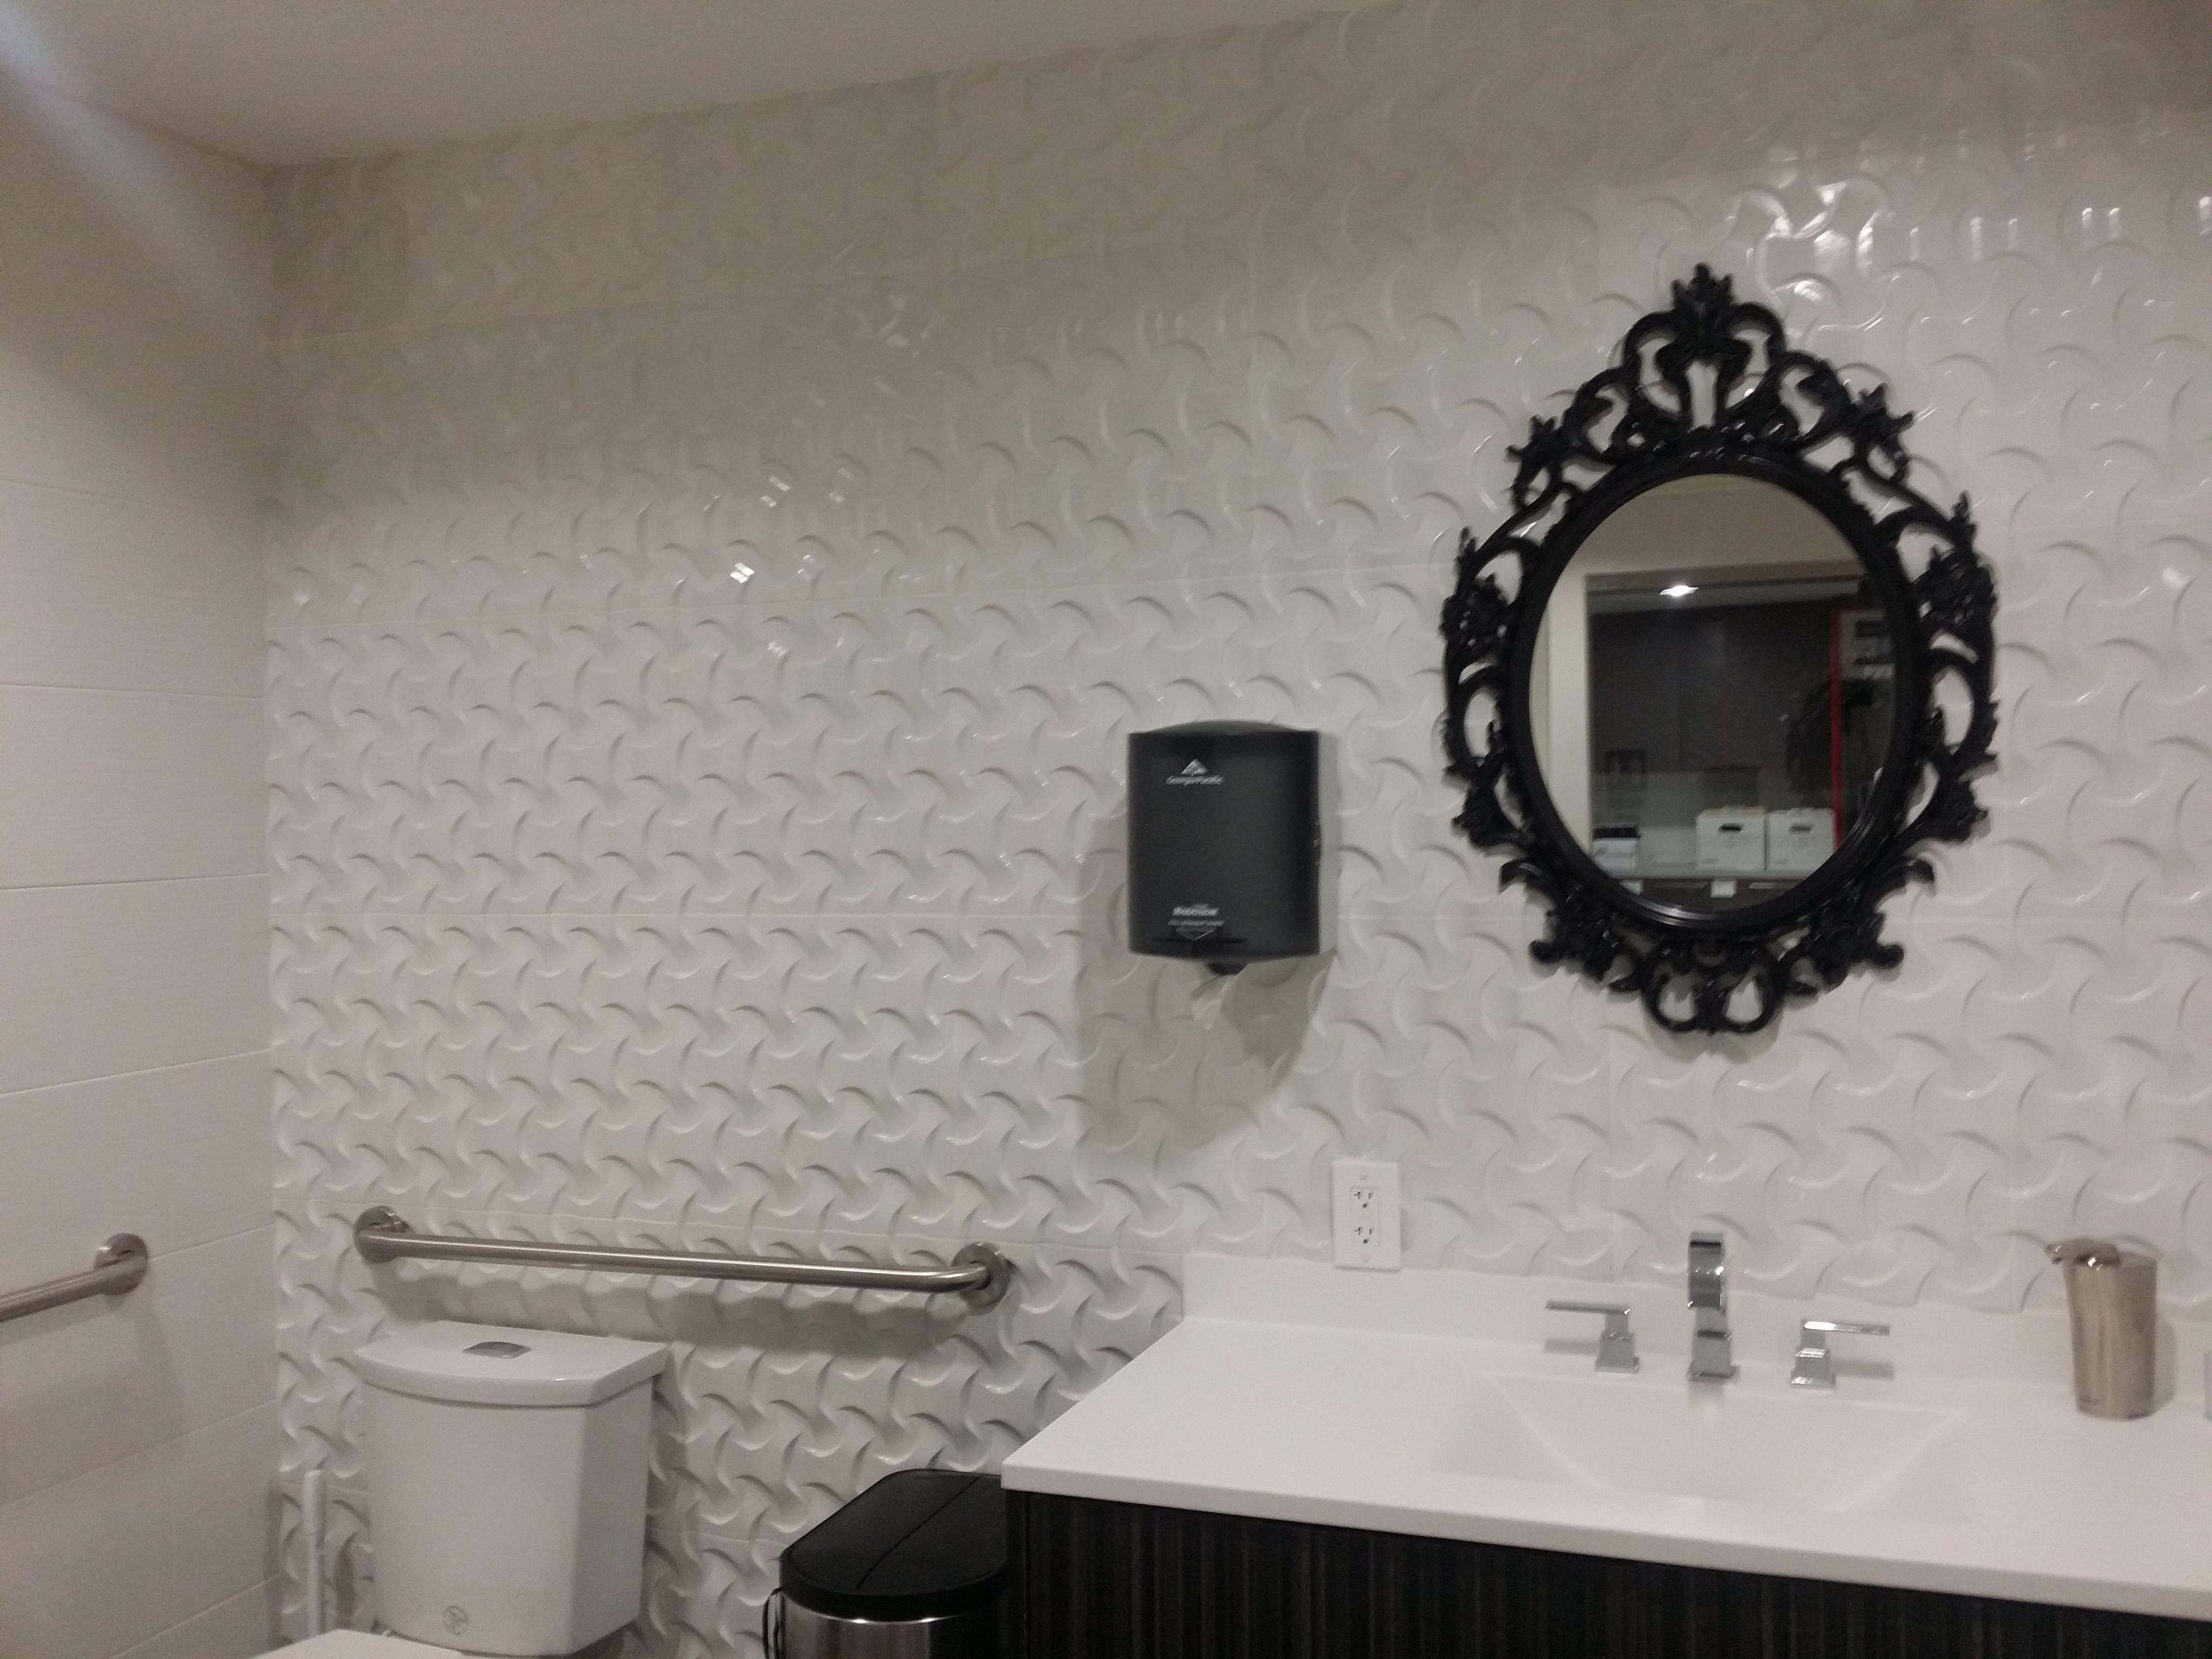 Painted gypsum tiles add texture to this restroom ideas for my